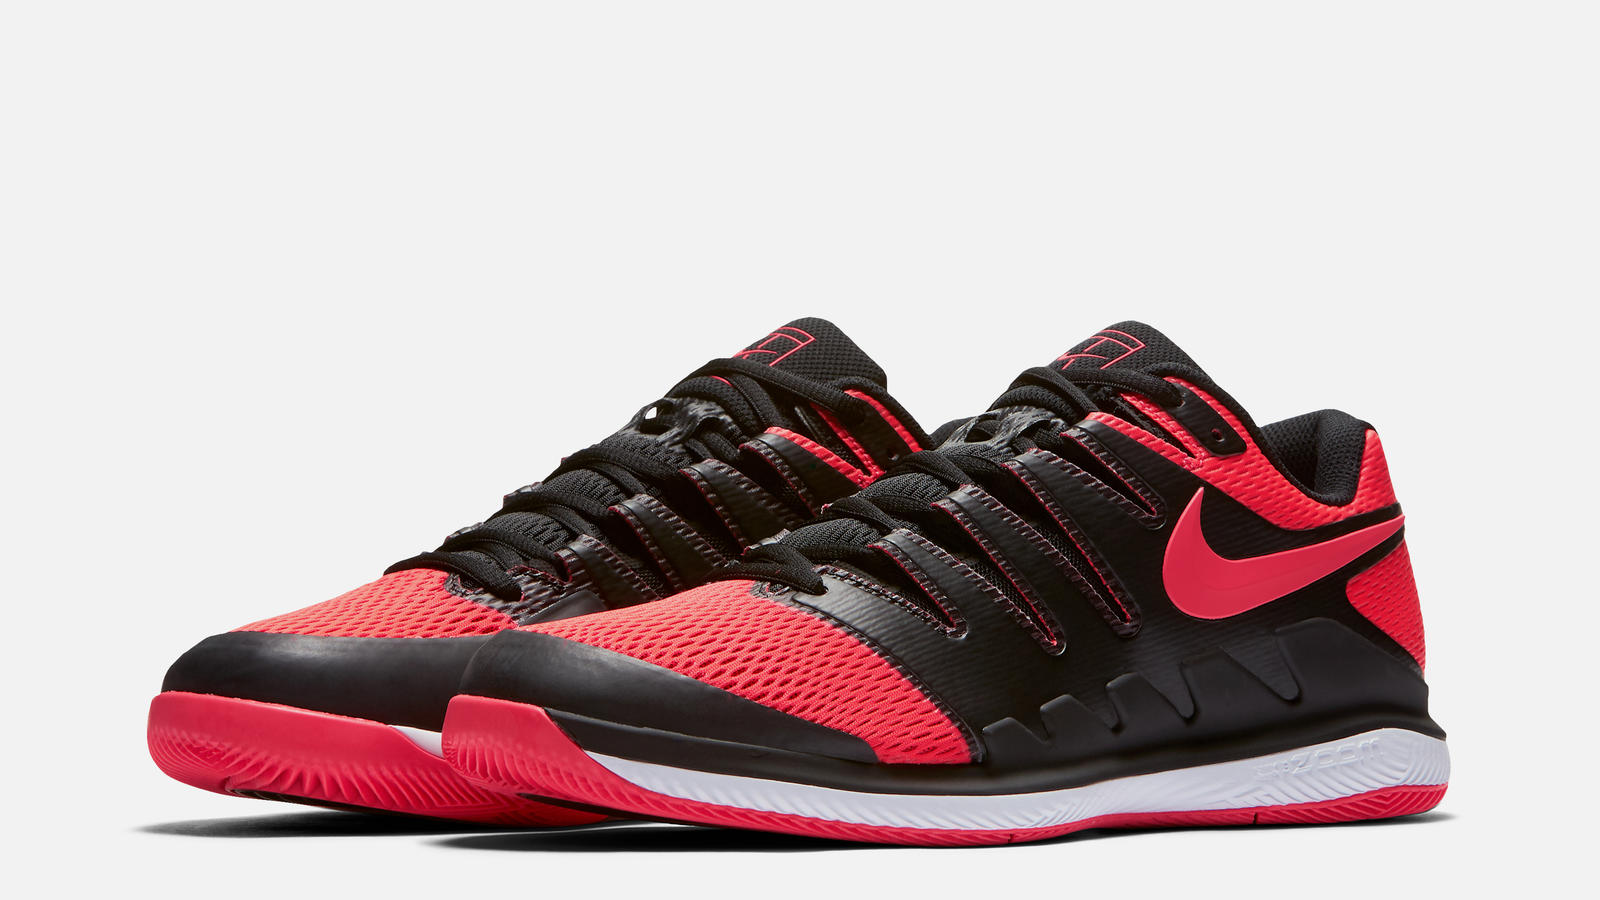 the nikecourt air zoom vapor x